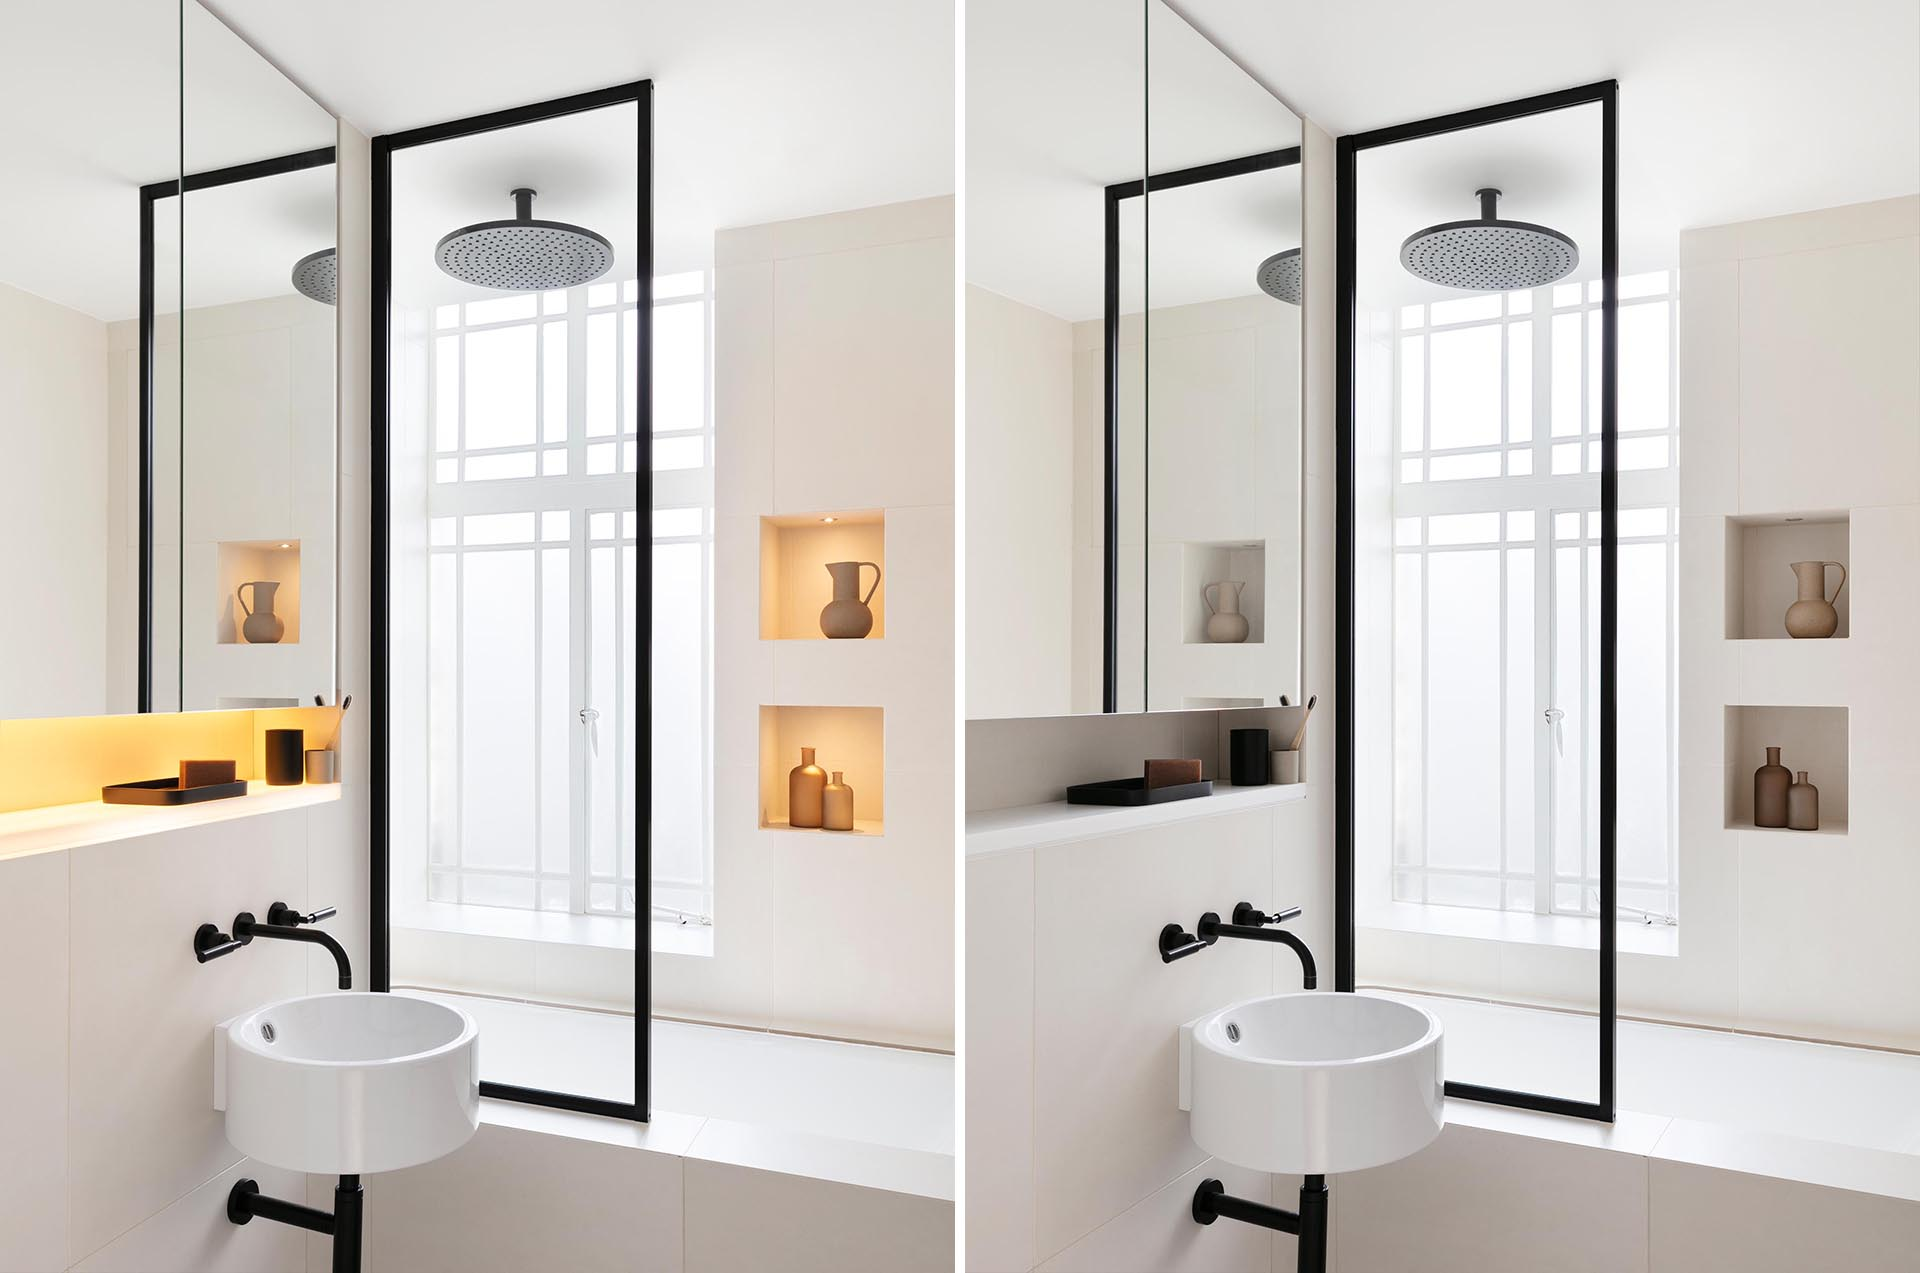 This remodeled bathroom received a black and white art deco feel to resemble the age of the apartment. The vanity area has a small recessed shelf with hidden lighting, while in the shower, small spotlights highlight the items on the shower niches.